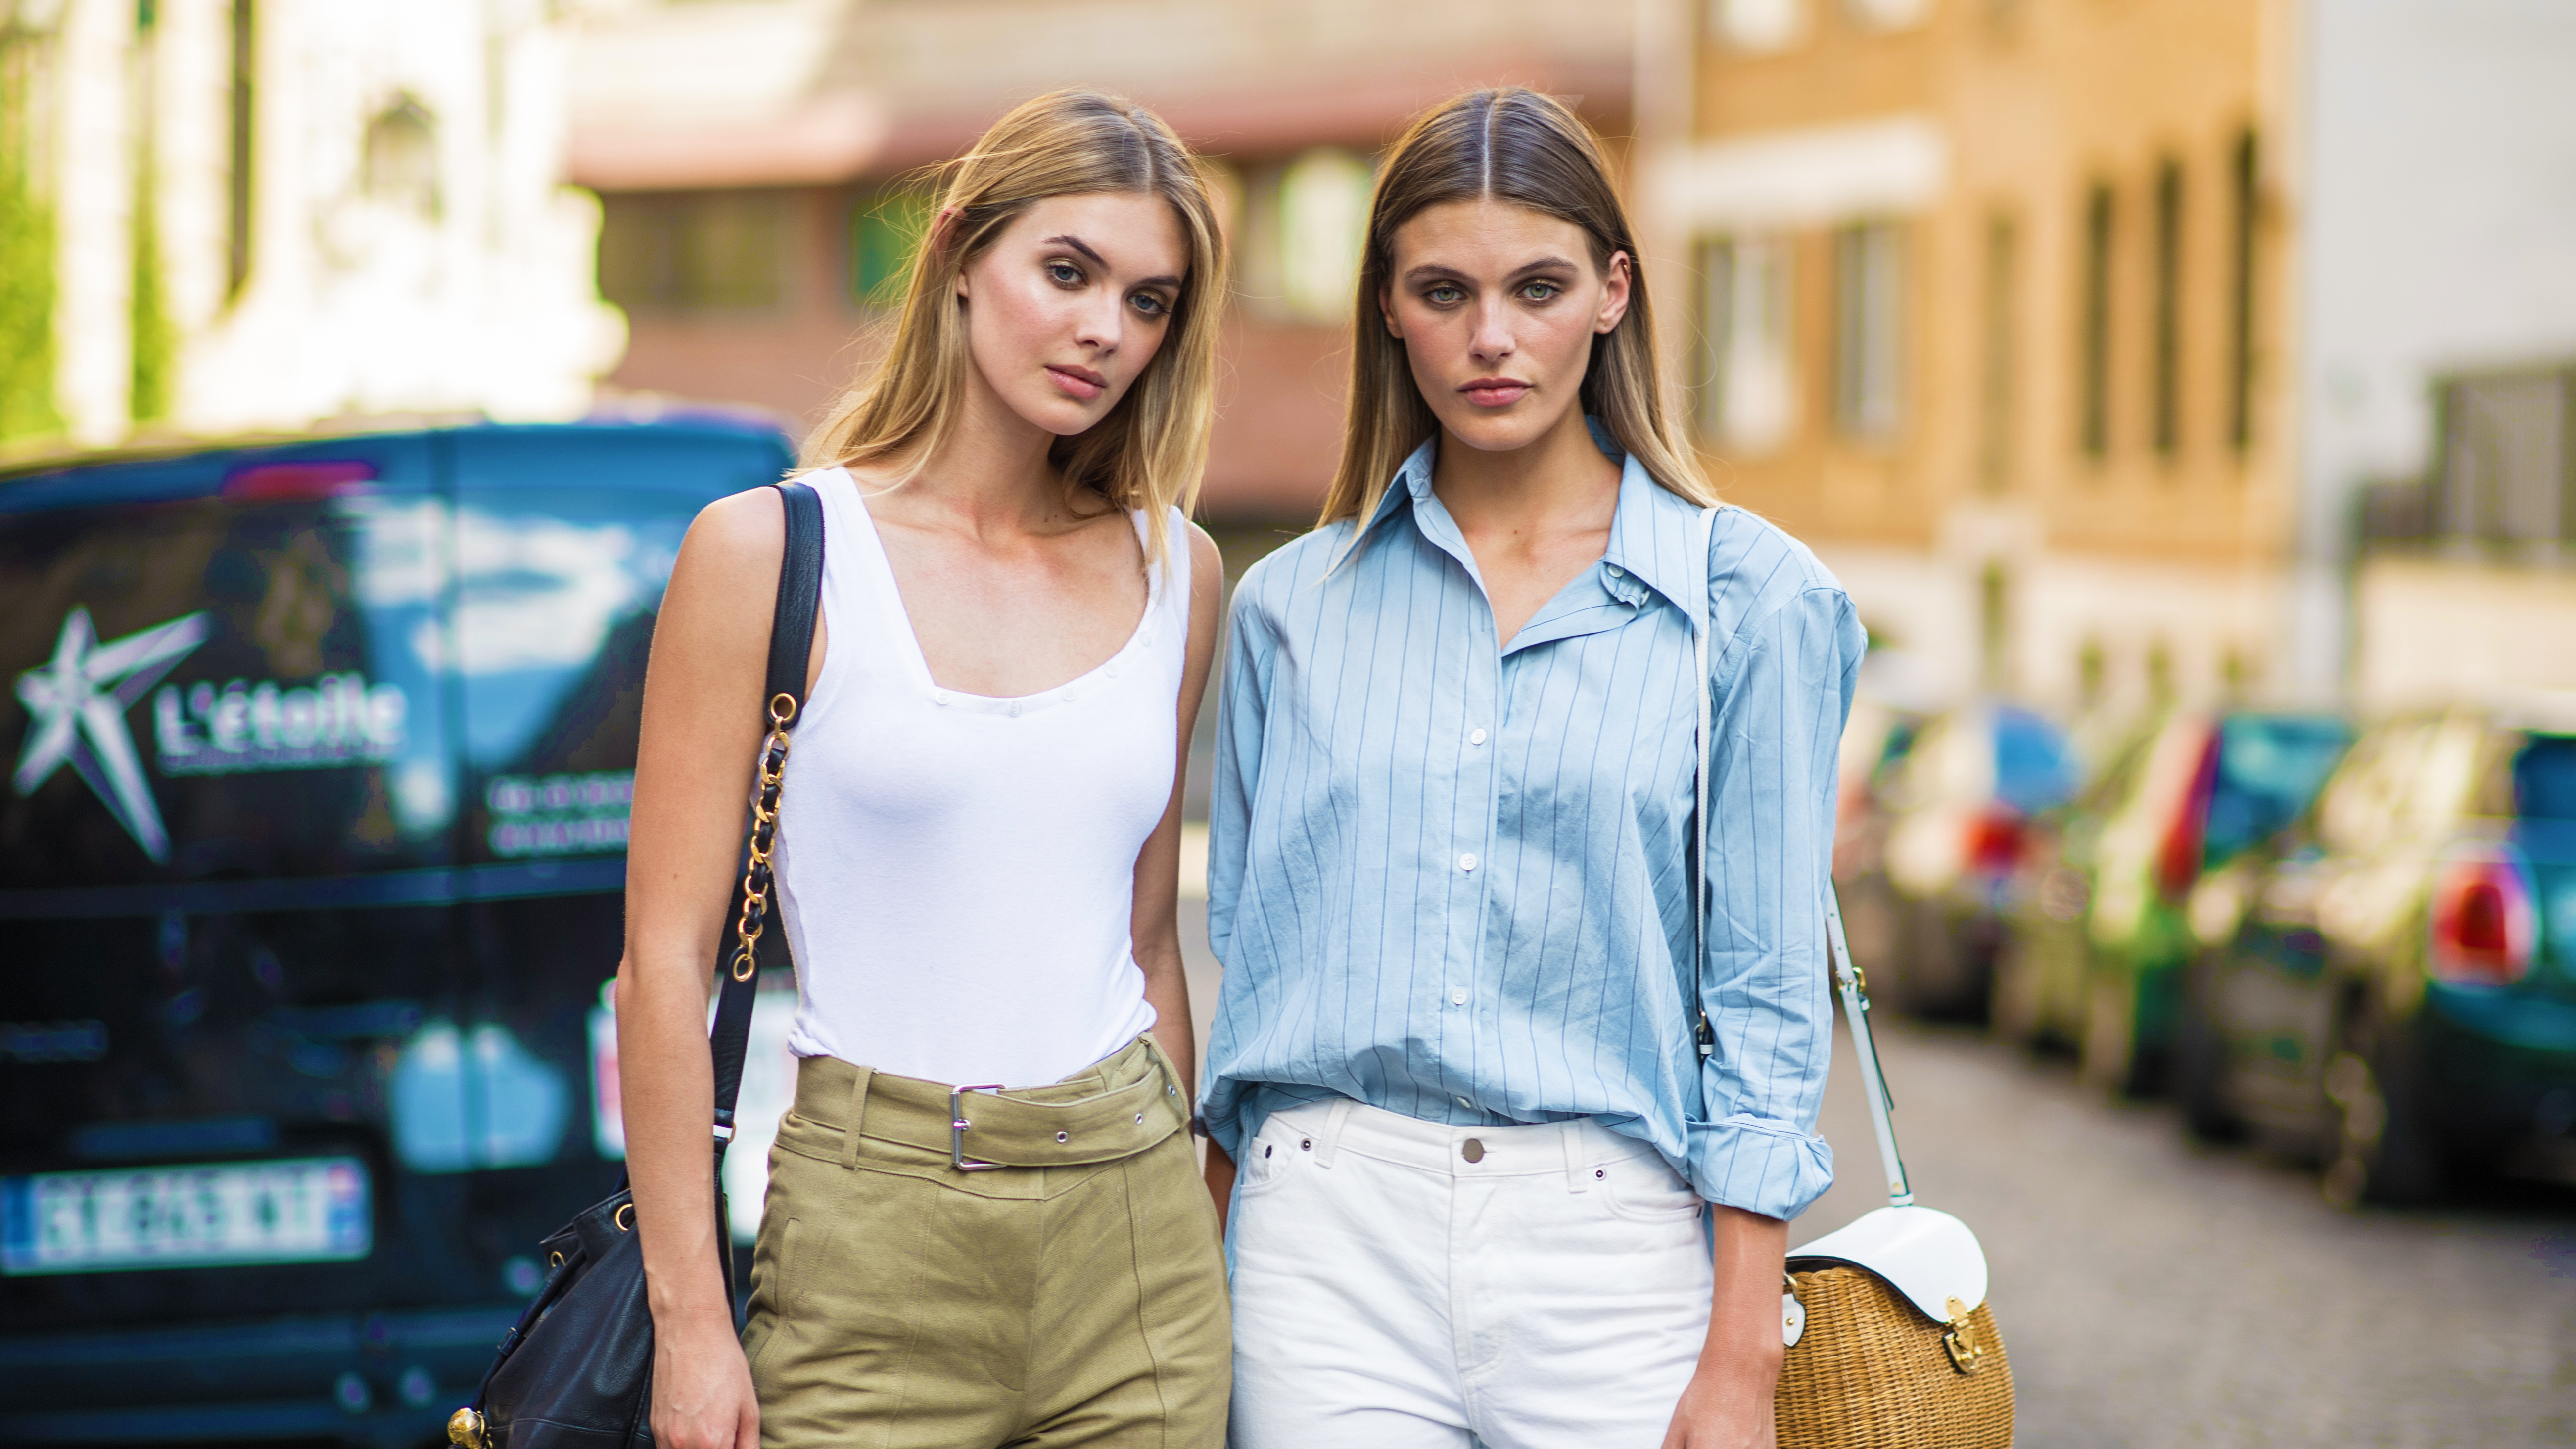 A Visual Guide to the 47 Sleekest Minimalist Fashion Outfits We've Ever Seen